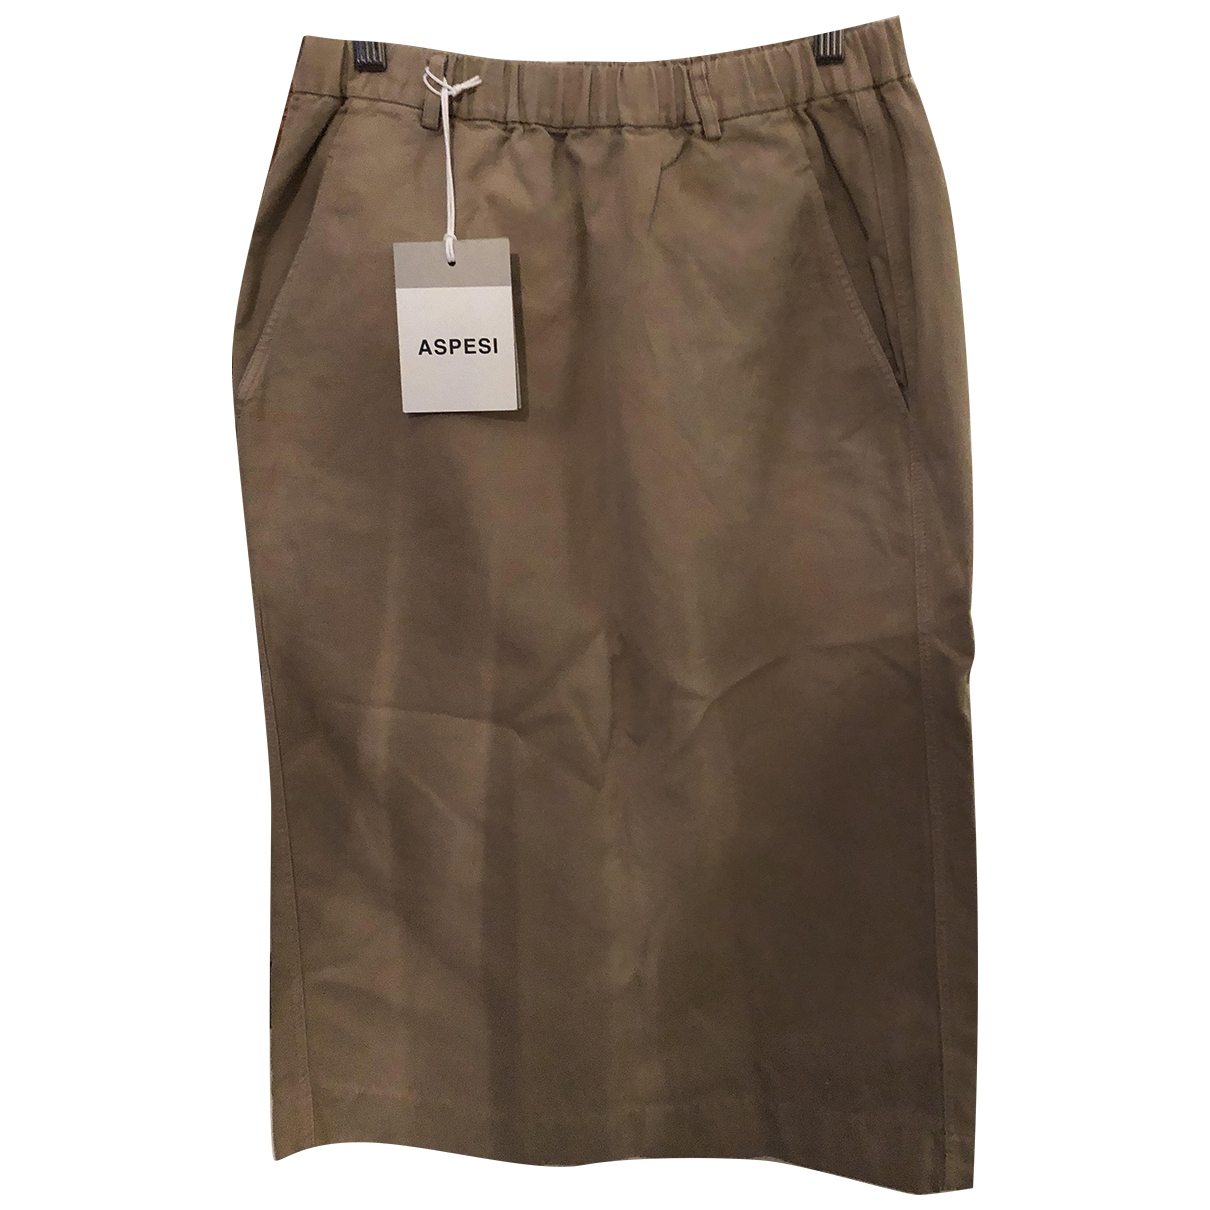 Aspesi \N Camel Cotton skirt for Women 42 IT